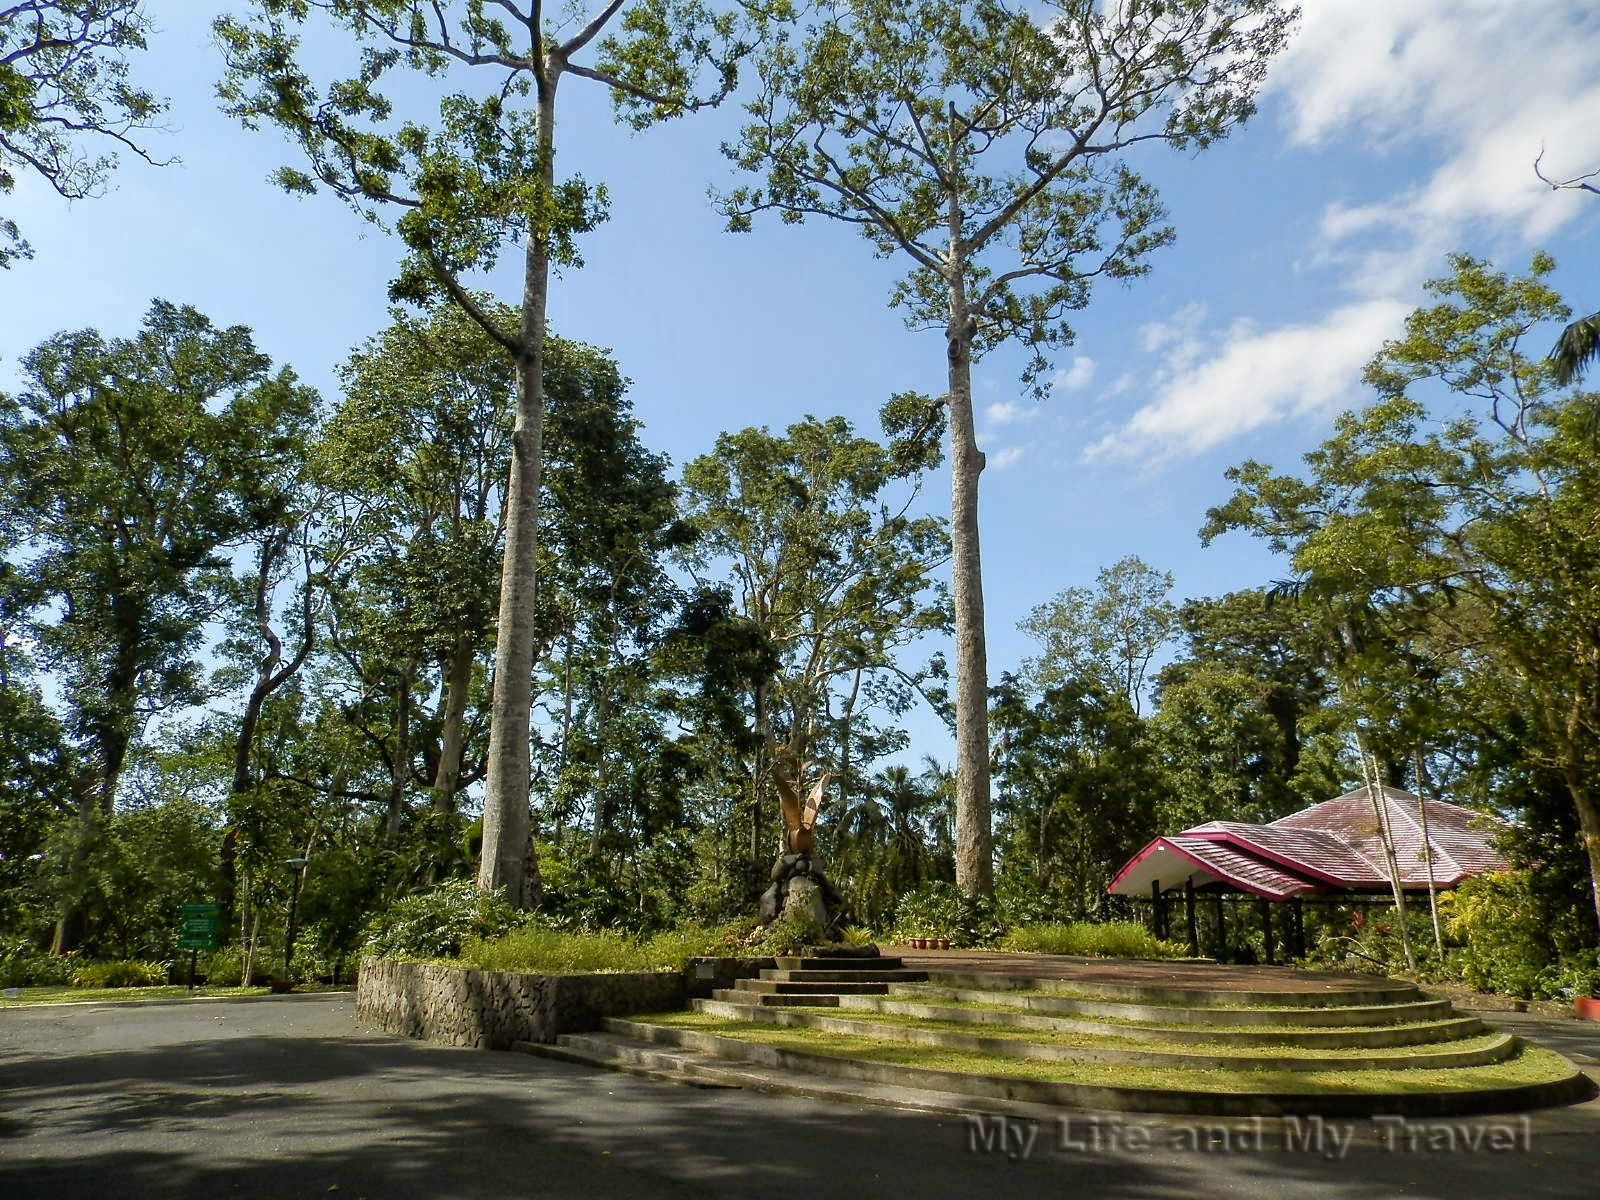 My life and my travel makiling botanic garden for What time does the botanical gardens close